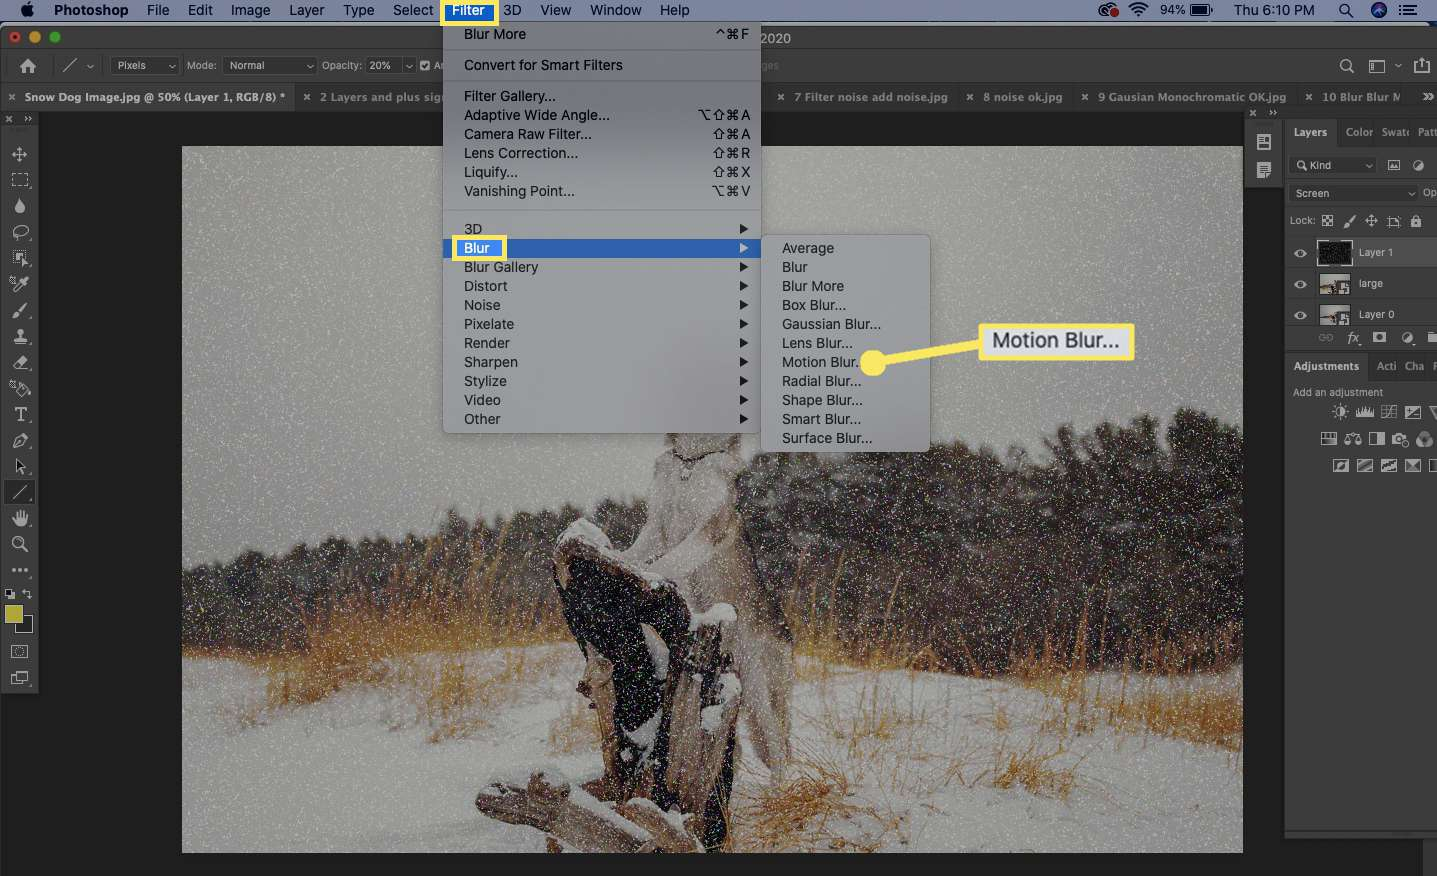 Select Filter from the top menu and then select Blur > Motion Blur.